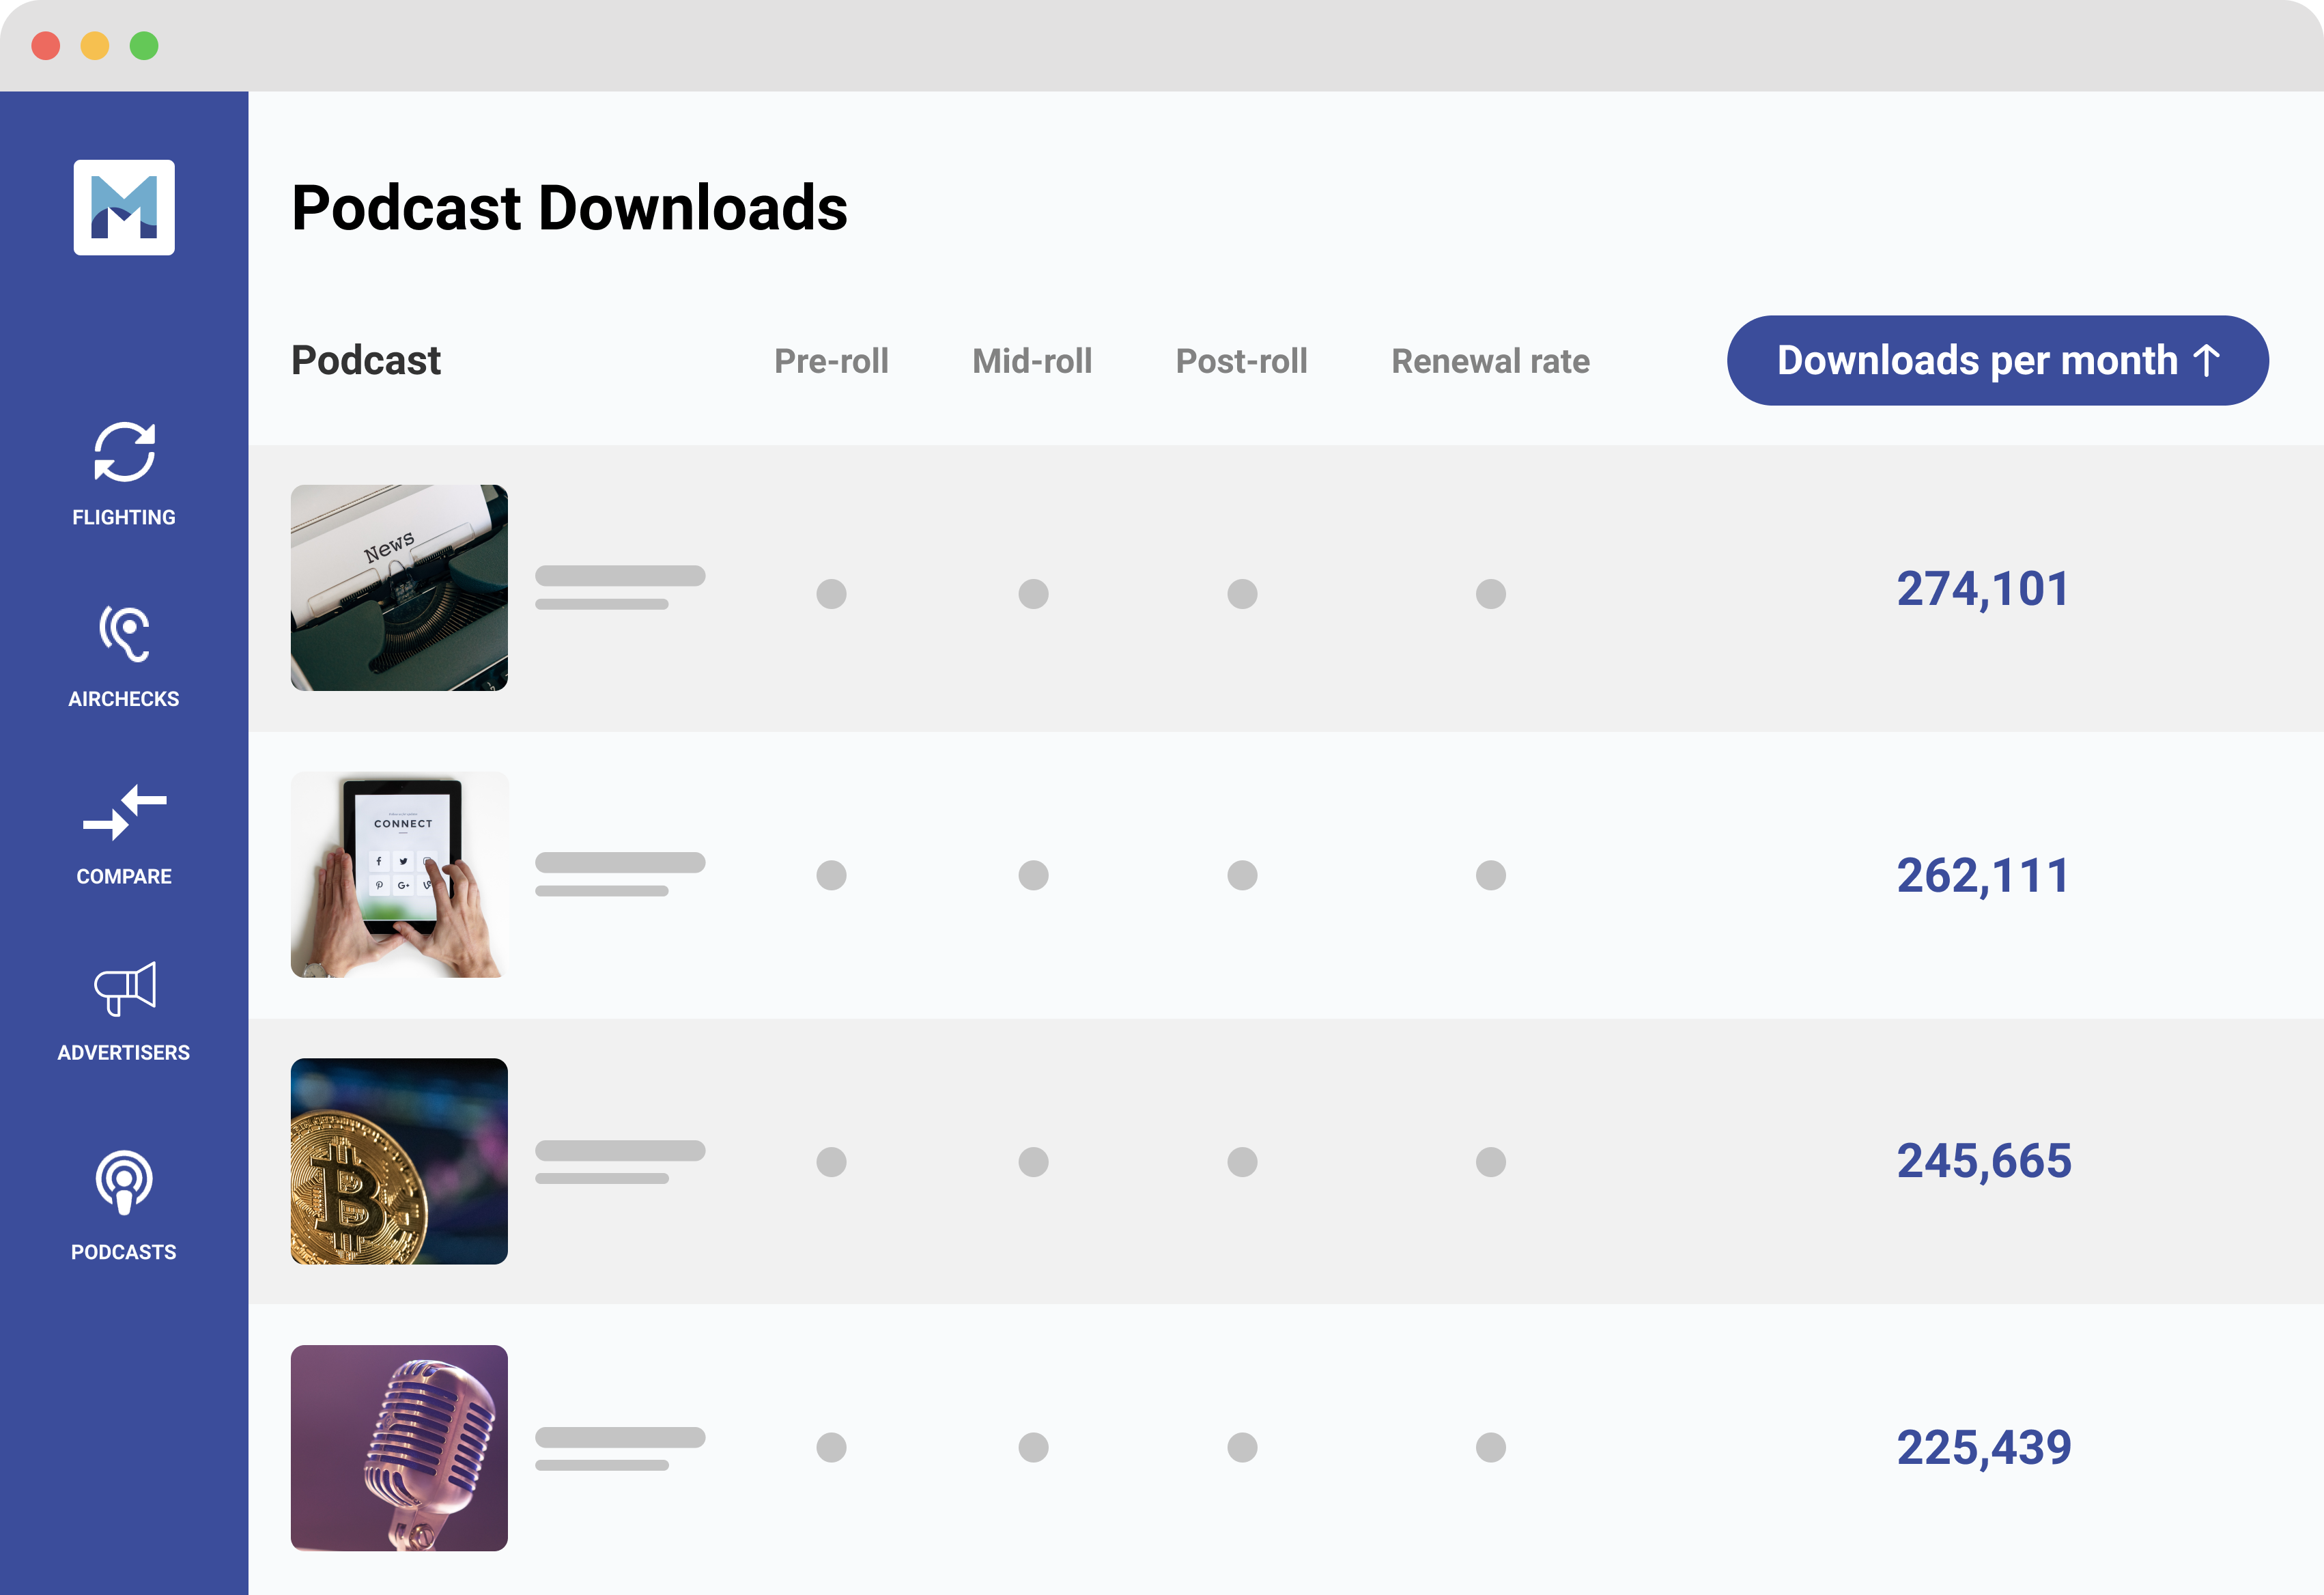 Stylized view of Magellan AI platform with podcast downloads highlighted